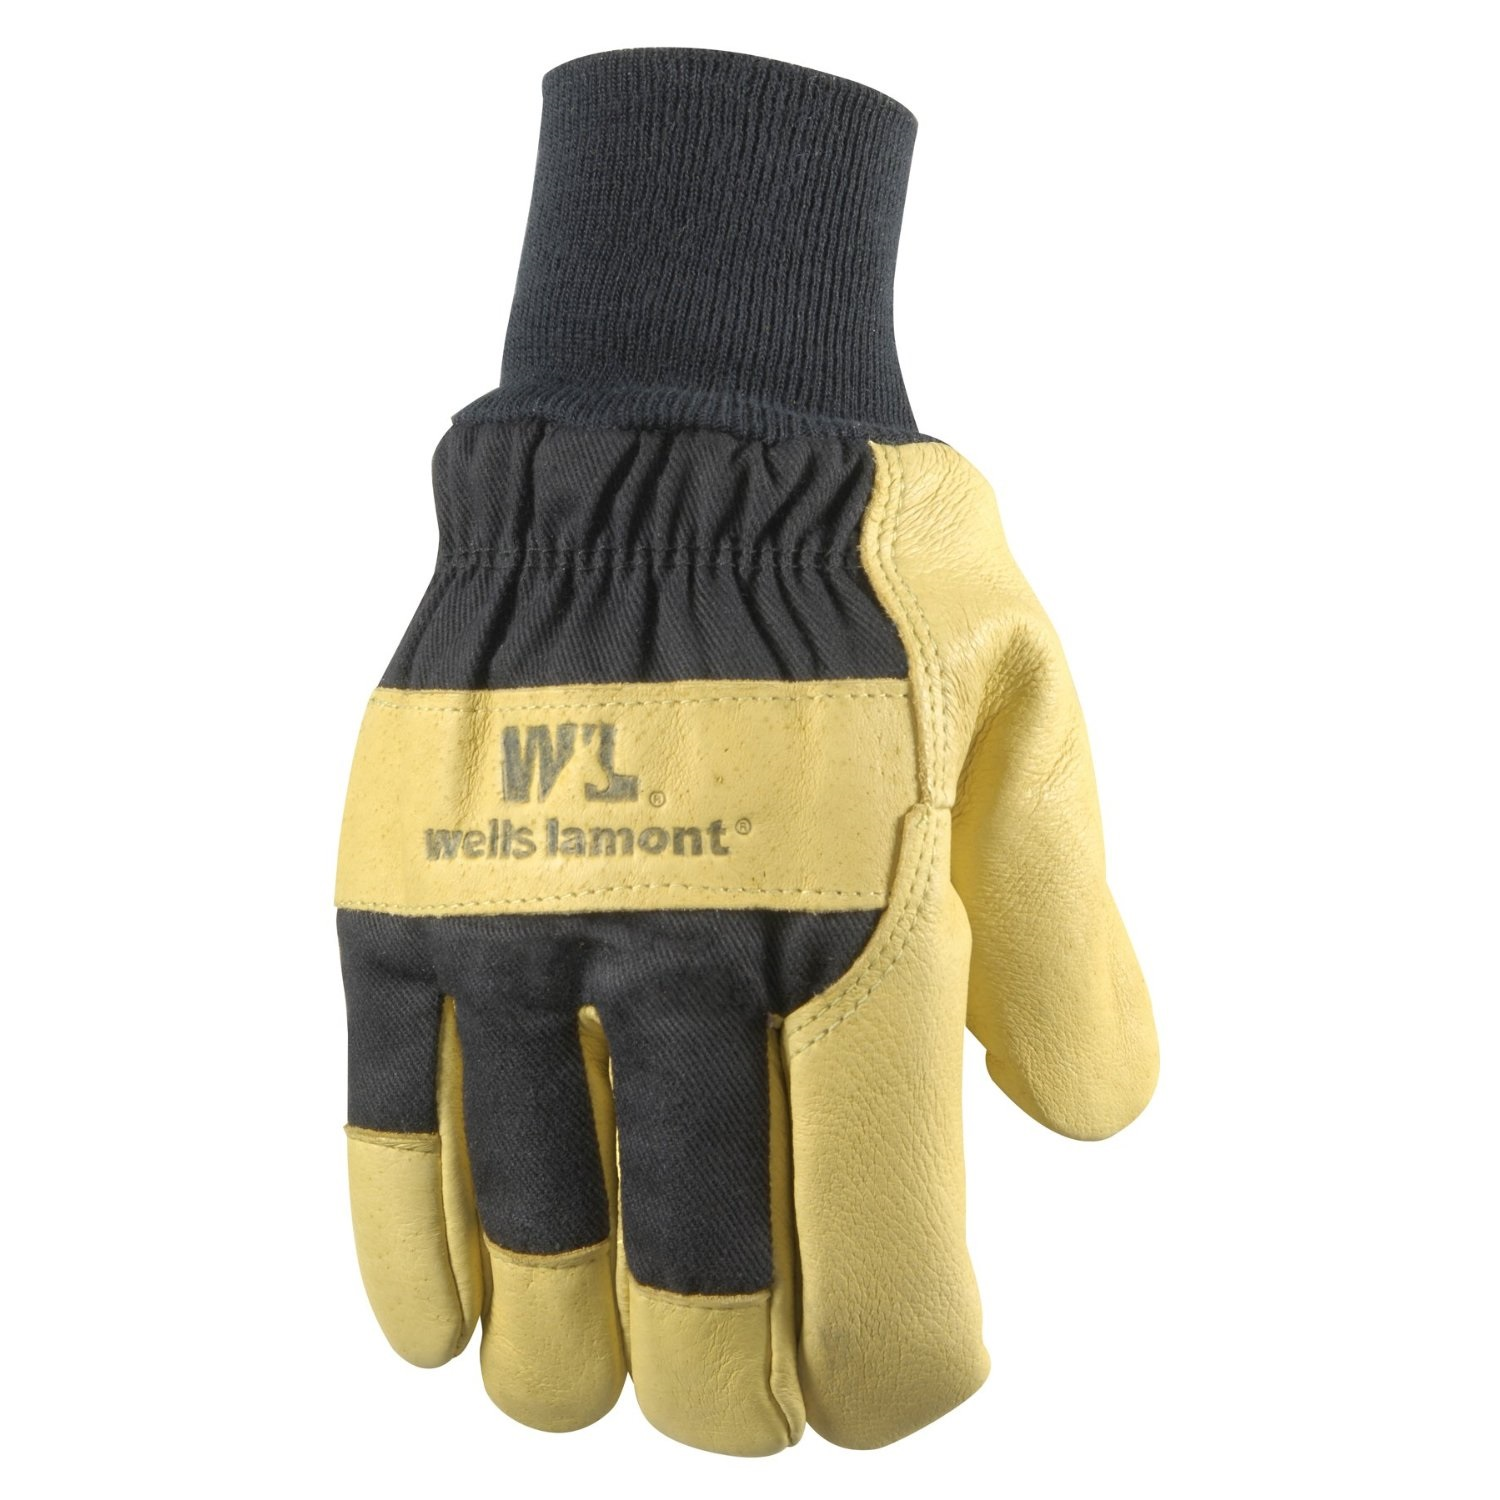 Wells Lamont Insulated Mens Pigskin Lined Leather Glove L by Wells Lamont